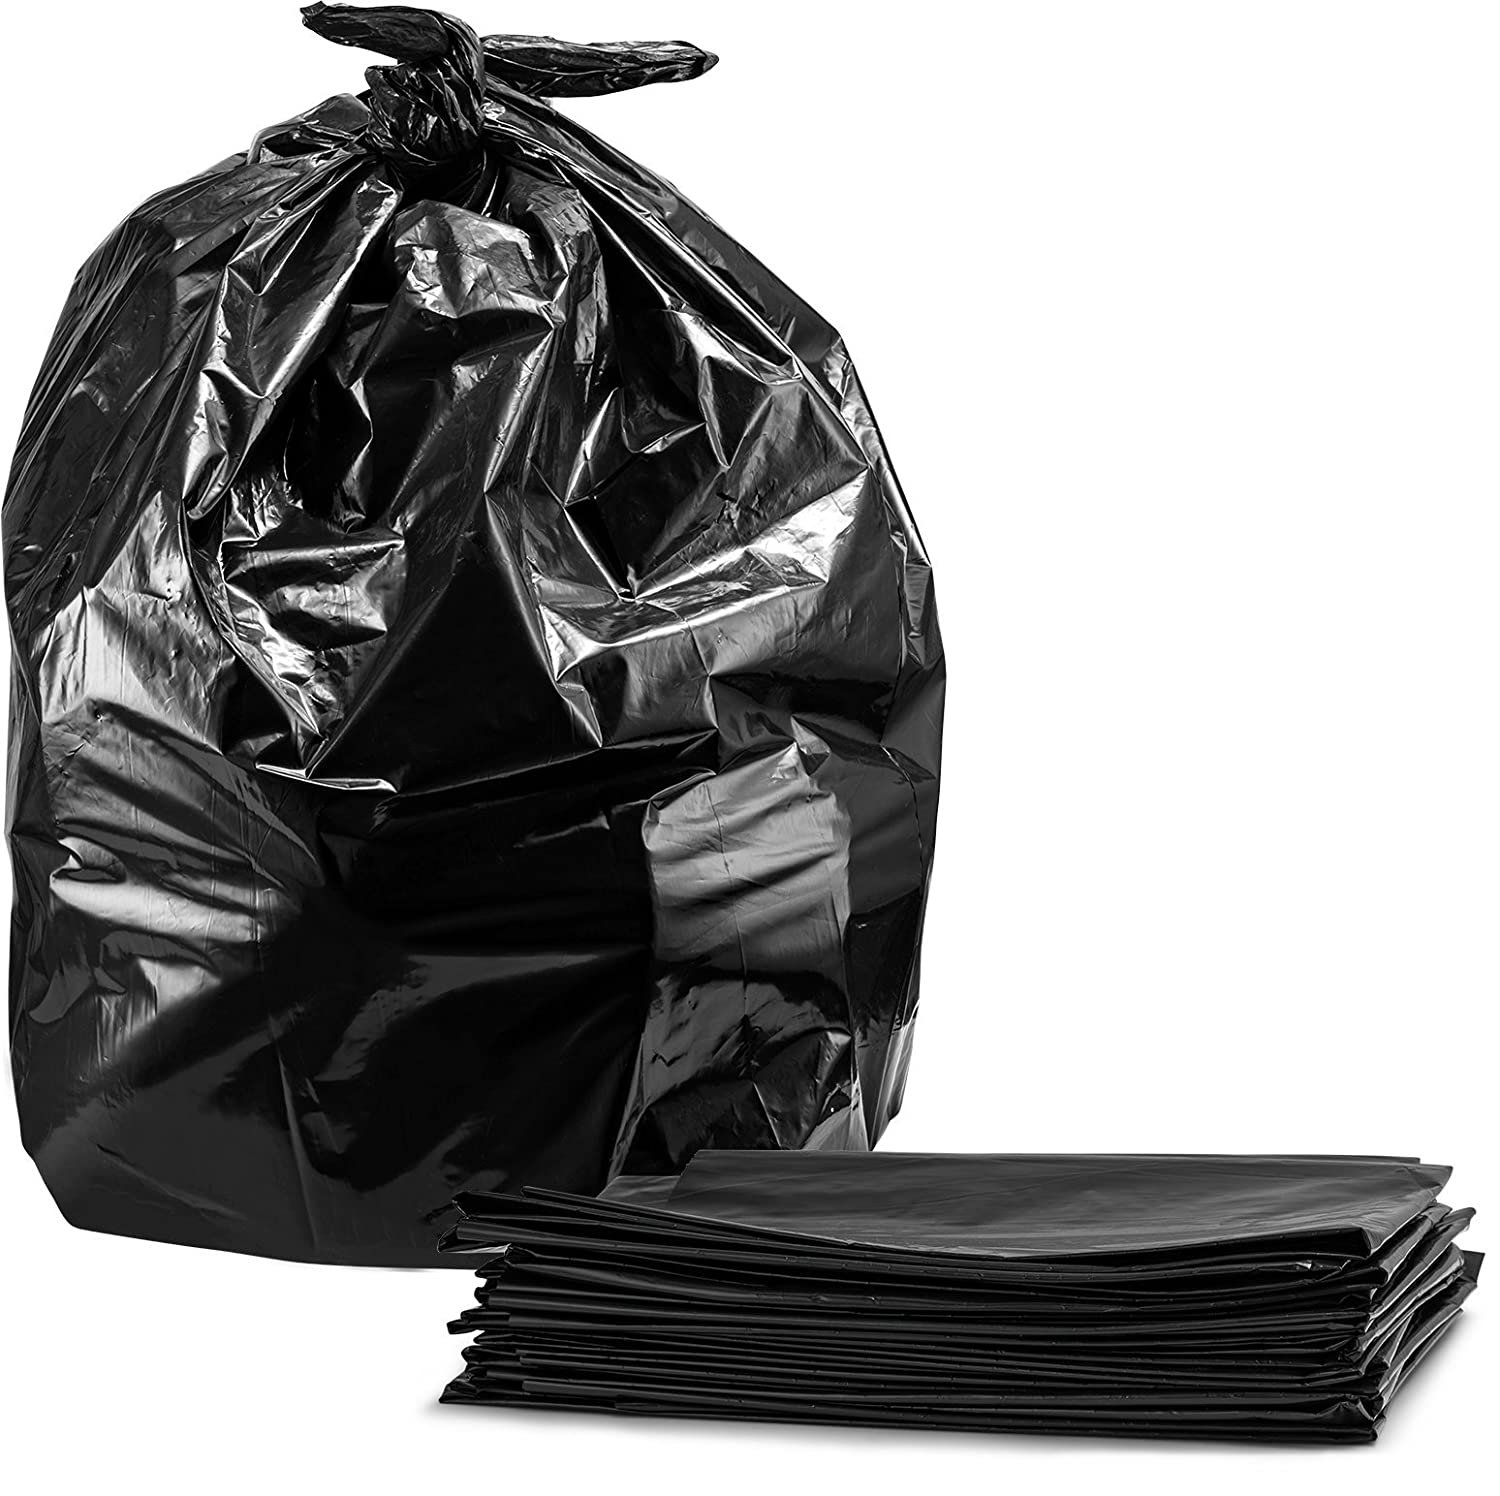 Trash Bags, For 55 Gallon, Large Heavy Duty Garbage Bags, 50/Case, Black Tasker T5050-50